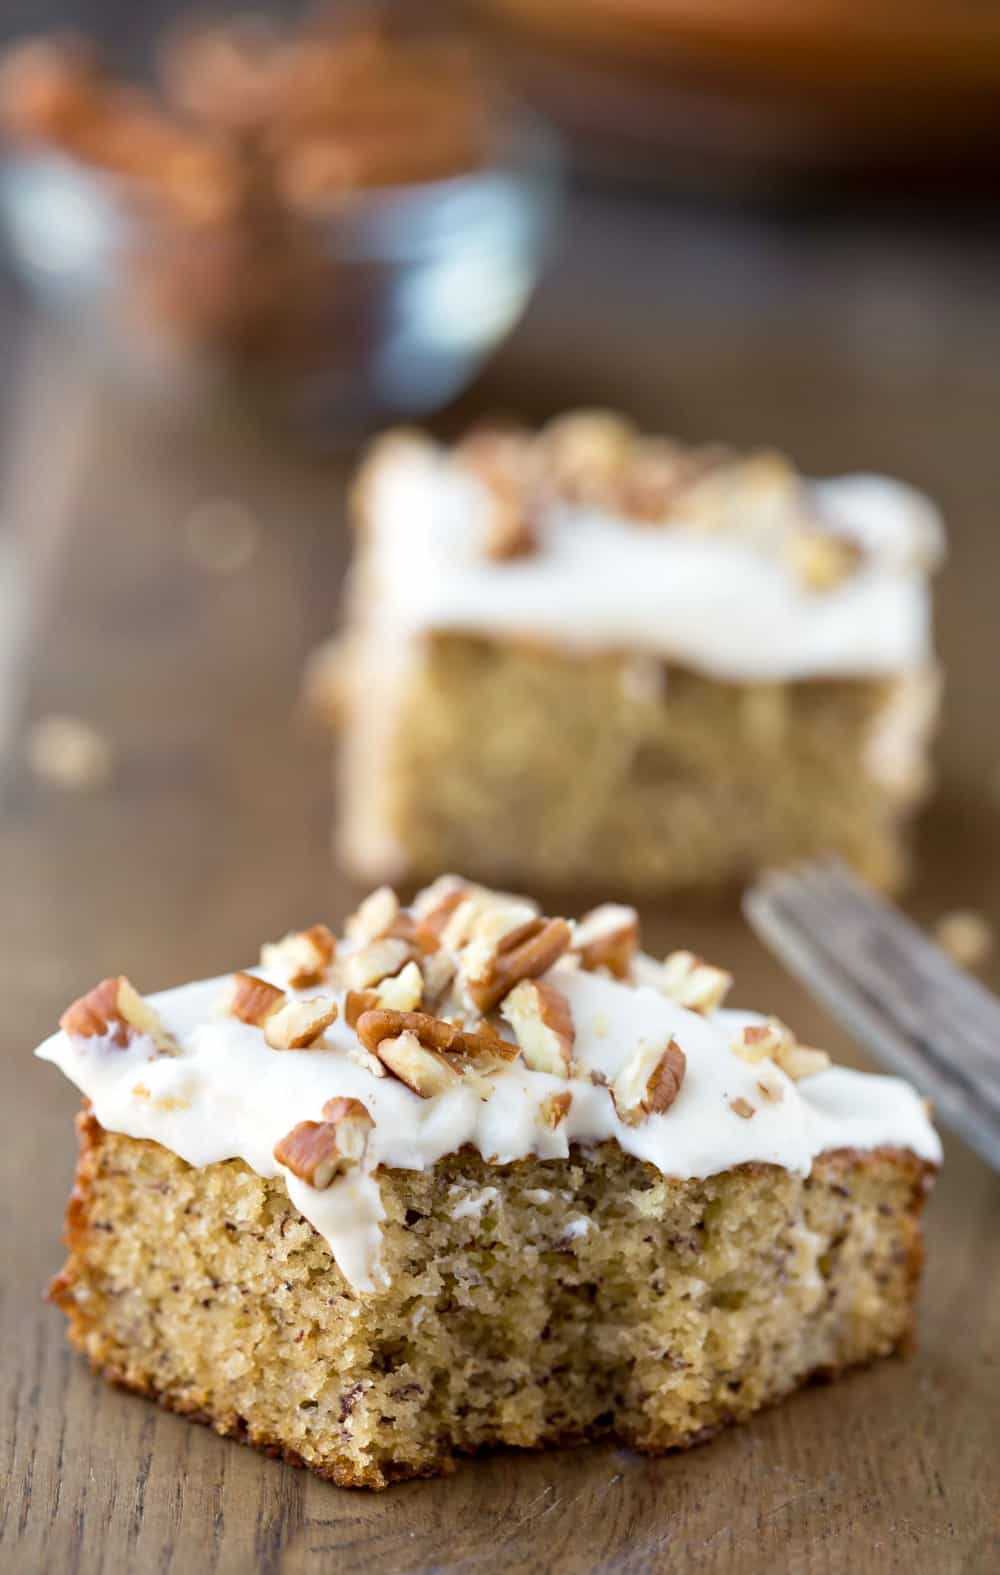 Banana Cake with Cream Cheese Frosting on a wooden background